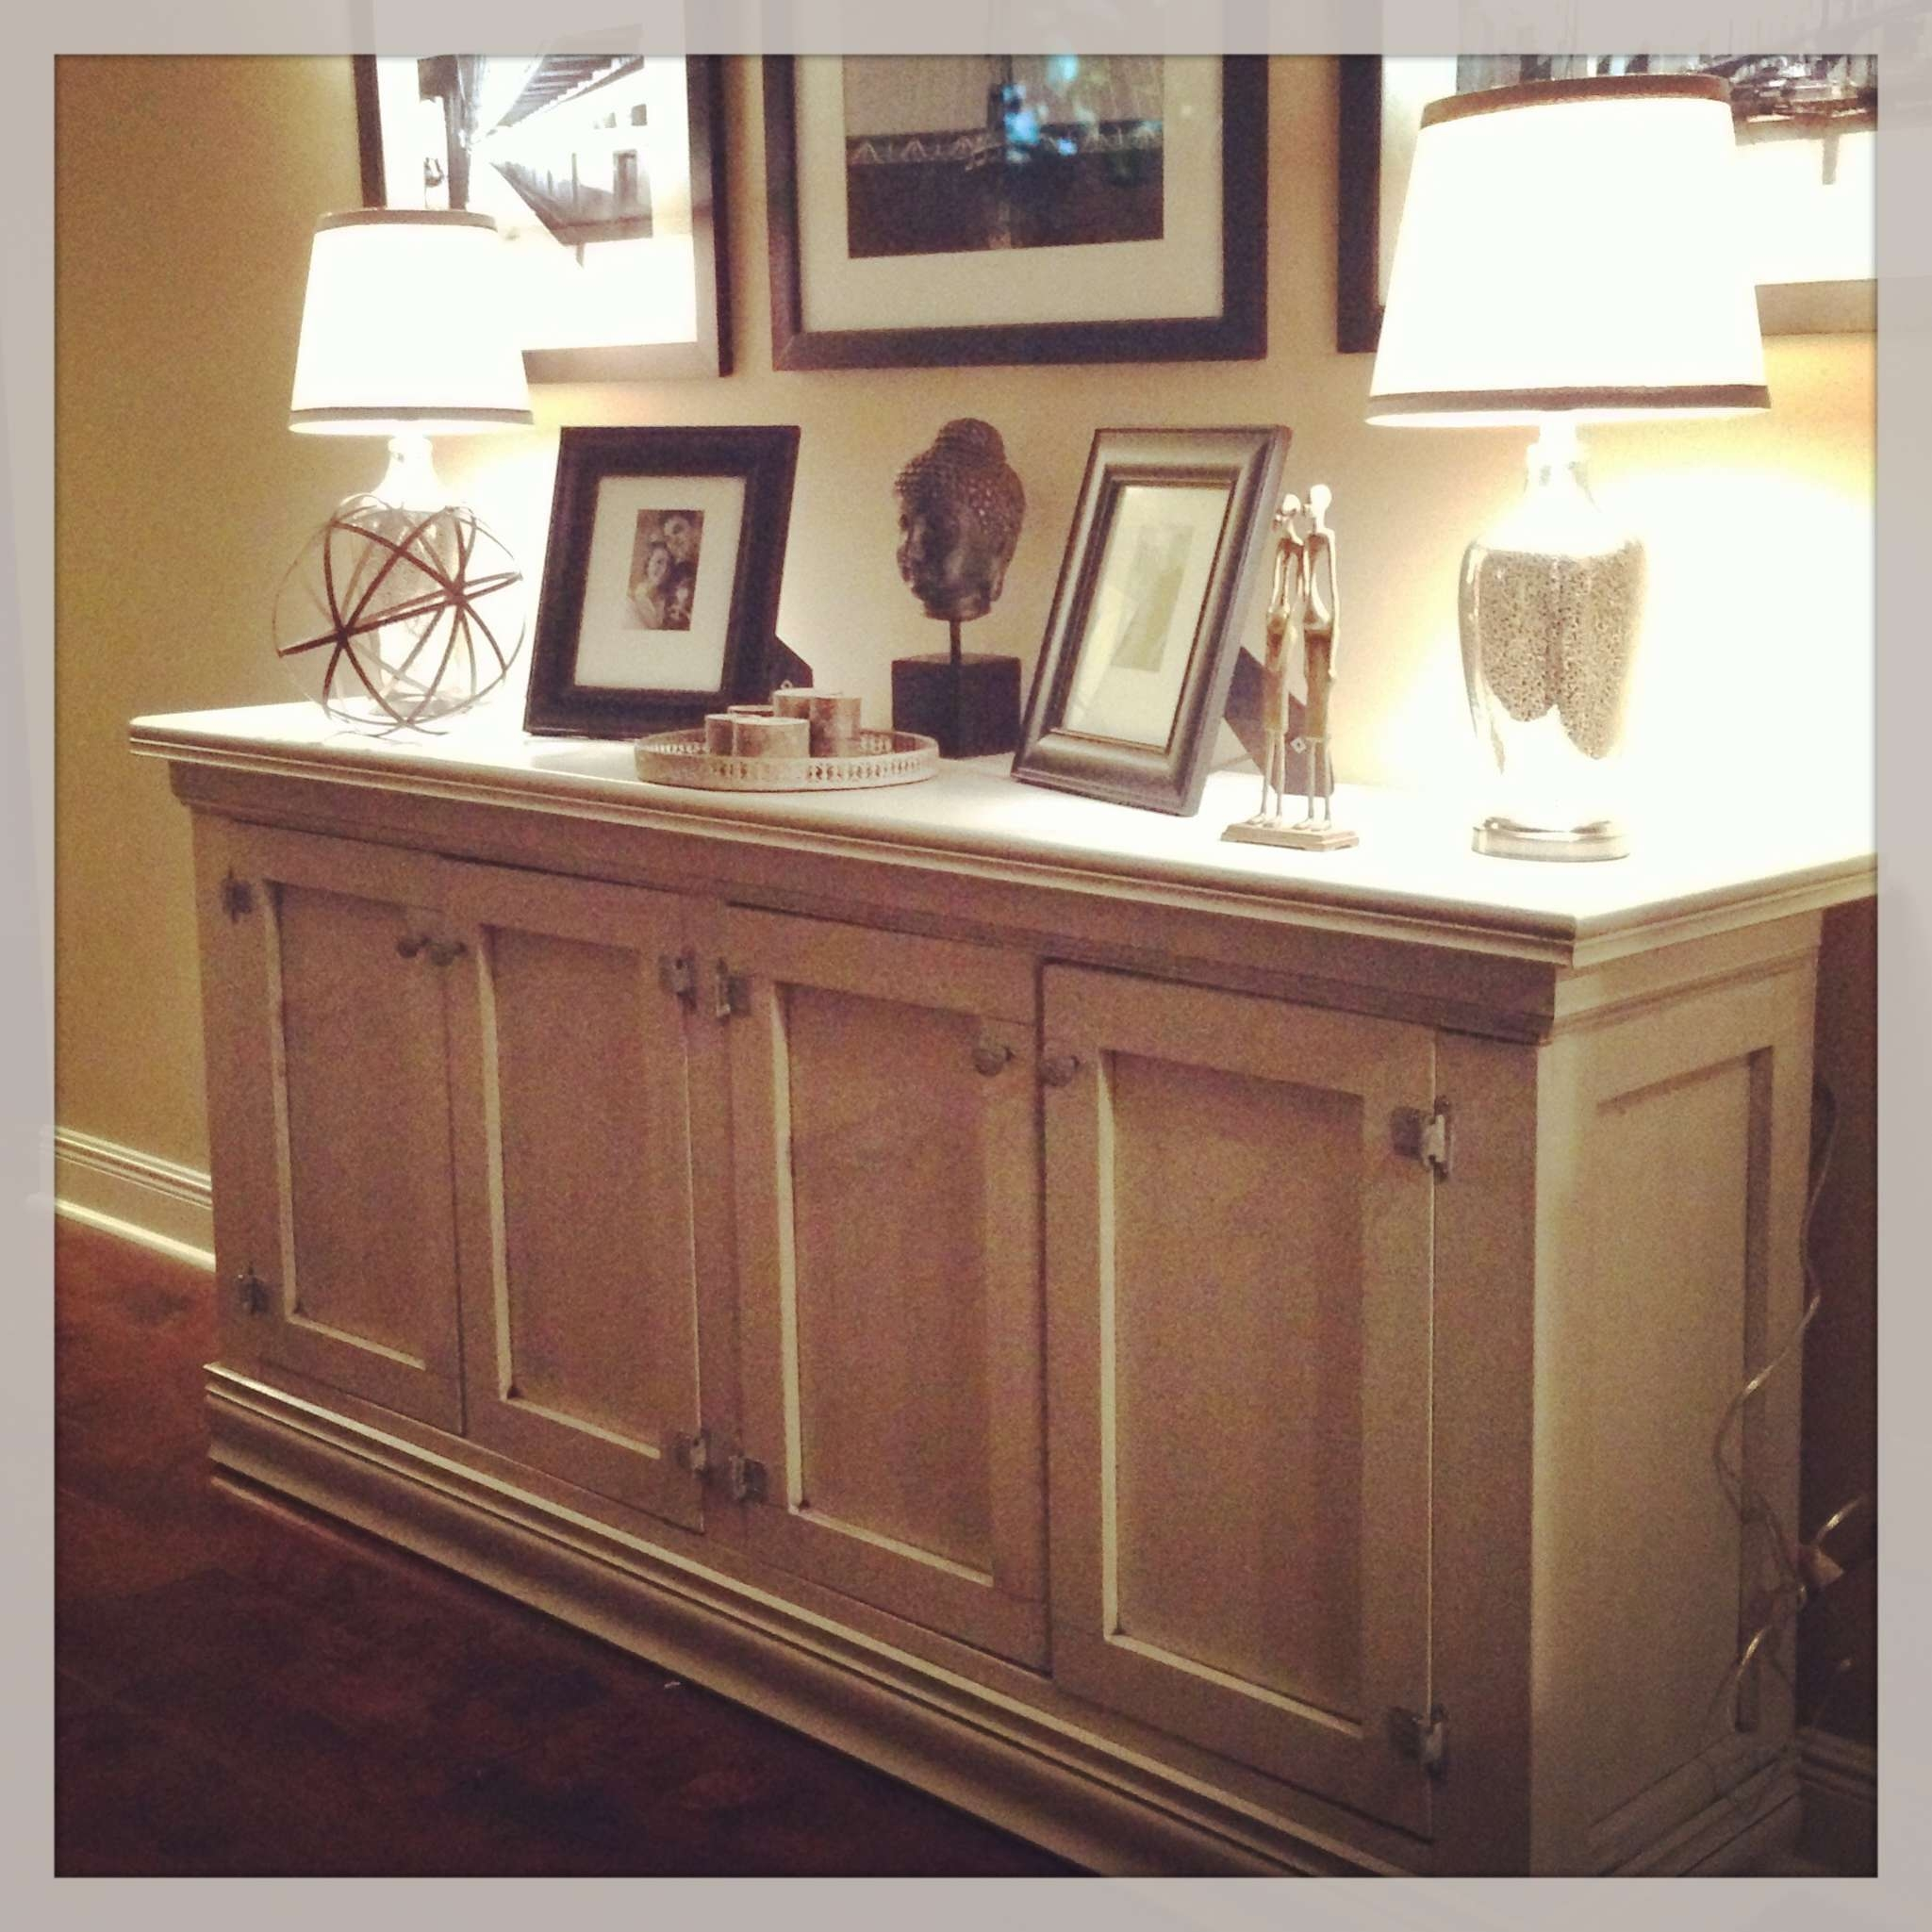 Breathtaking Dining Room Buffets Sideboards Ideas – Best Image Inside Dining Room Servers And Sideboards (View 3 of 20)